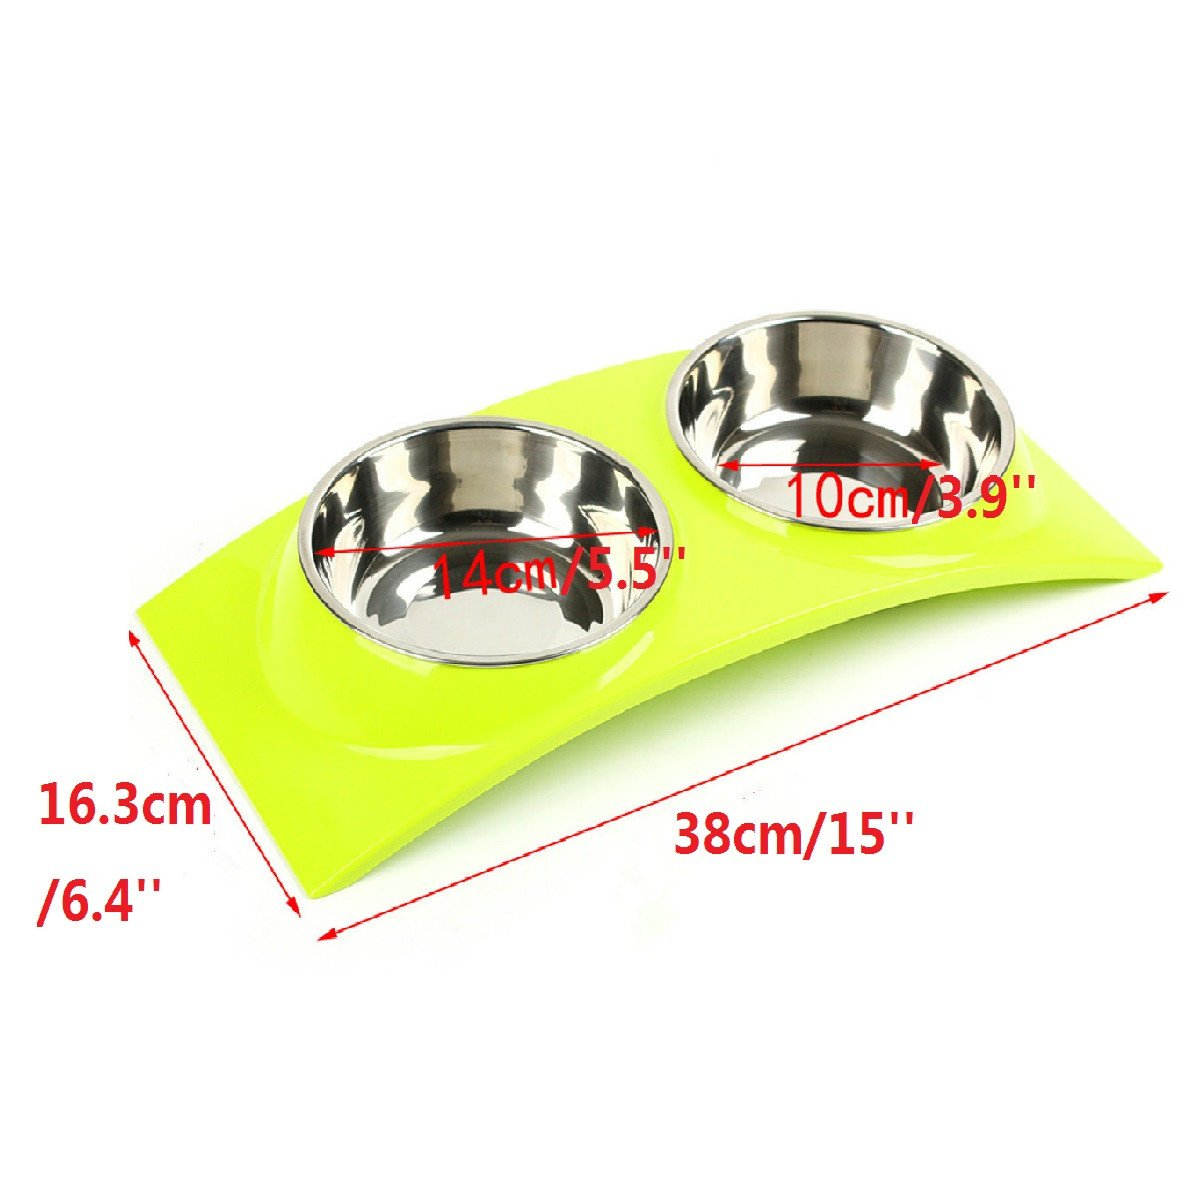 Food Dish Water Feeder Pet Cat Puppy Dog Bowel Stainless Steel Double Bowels Anti-skid Pet Bowel Yellow